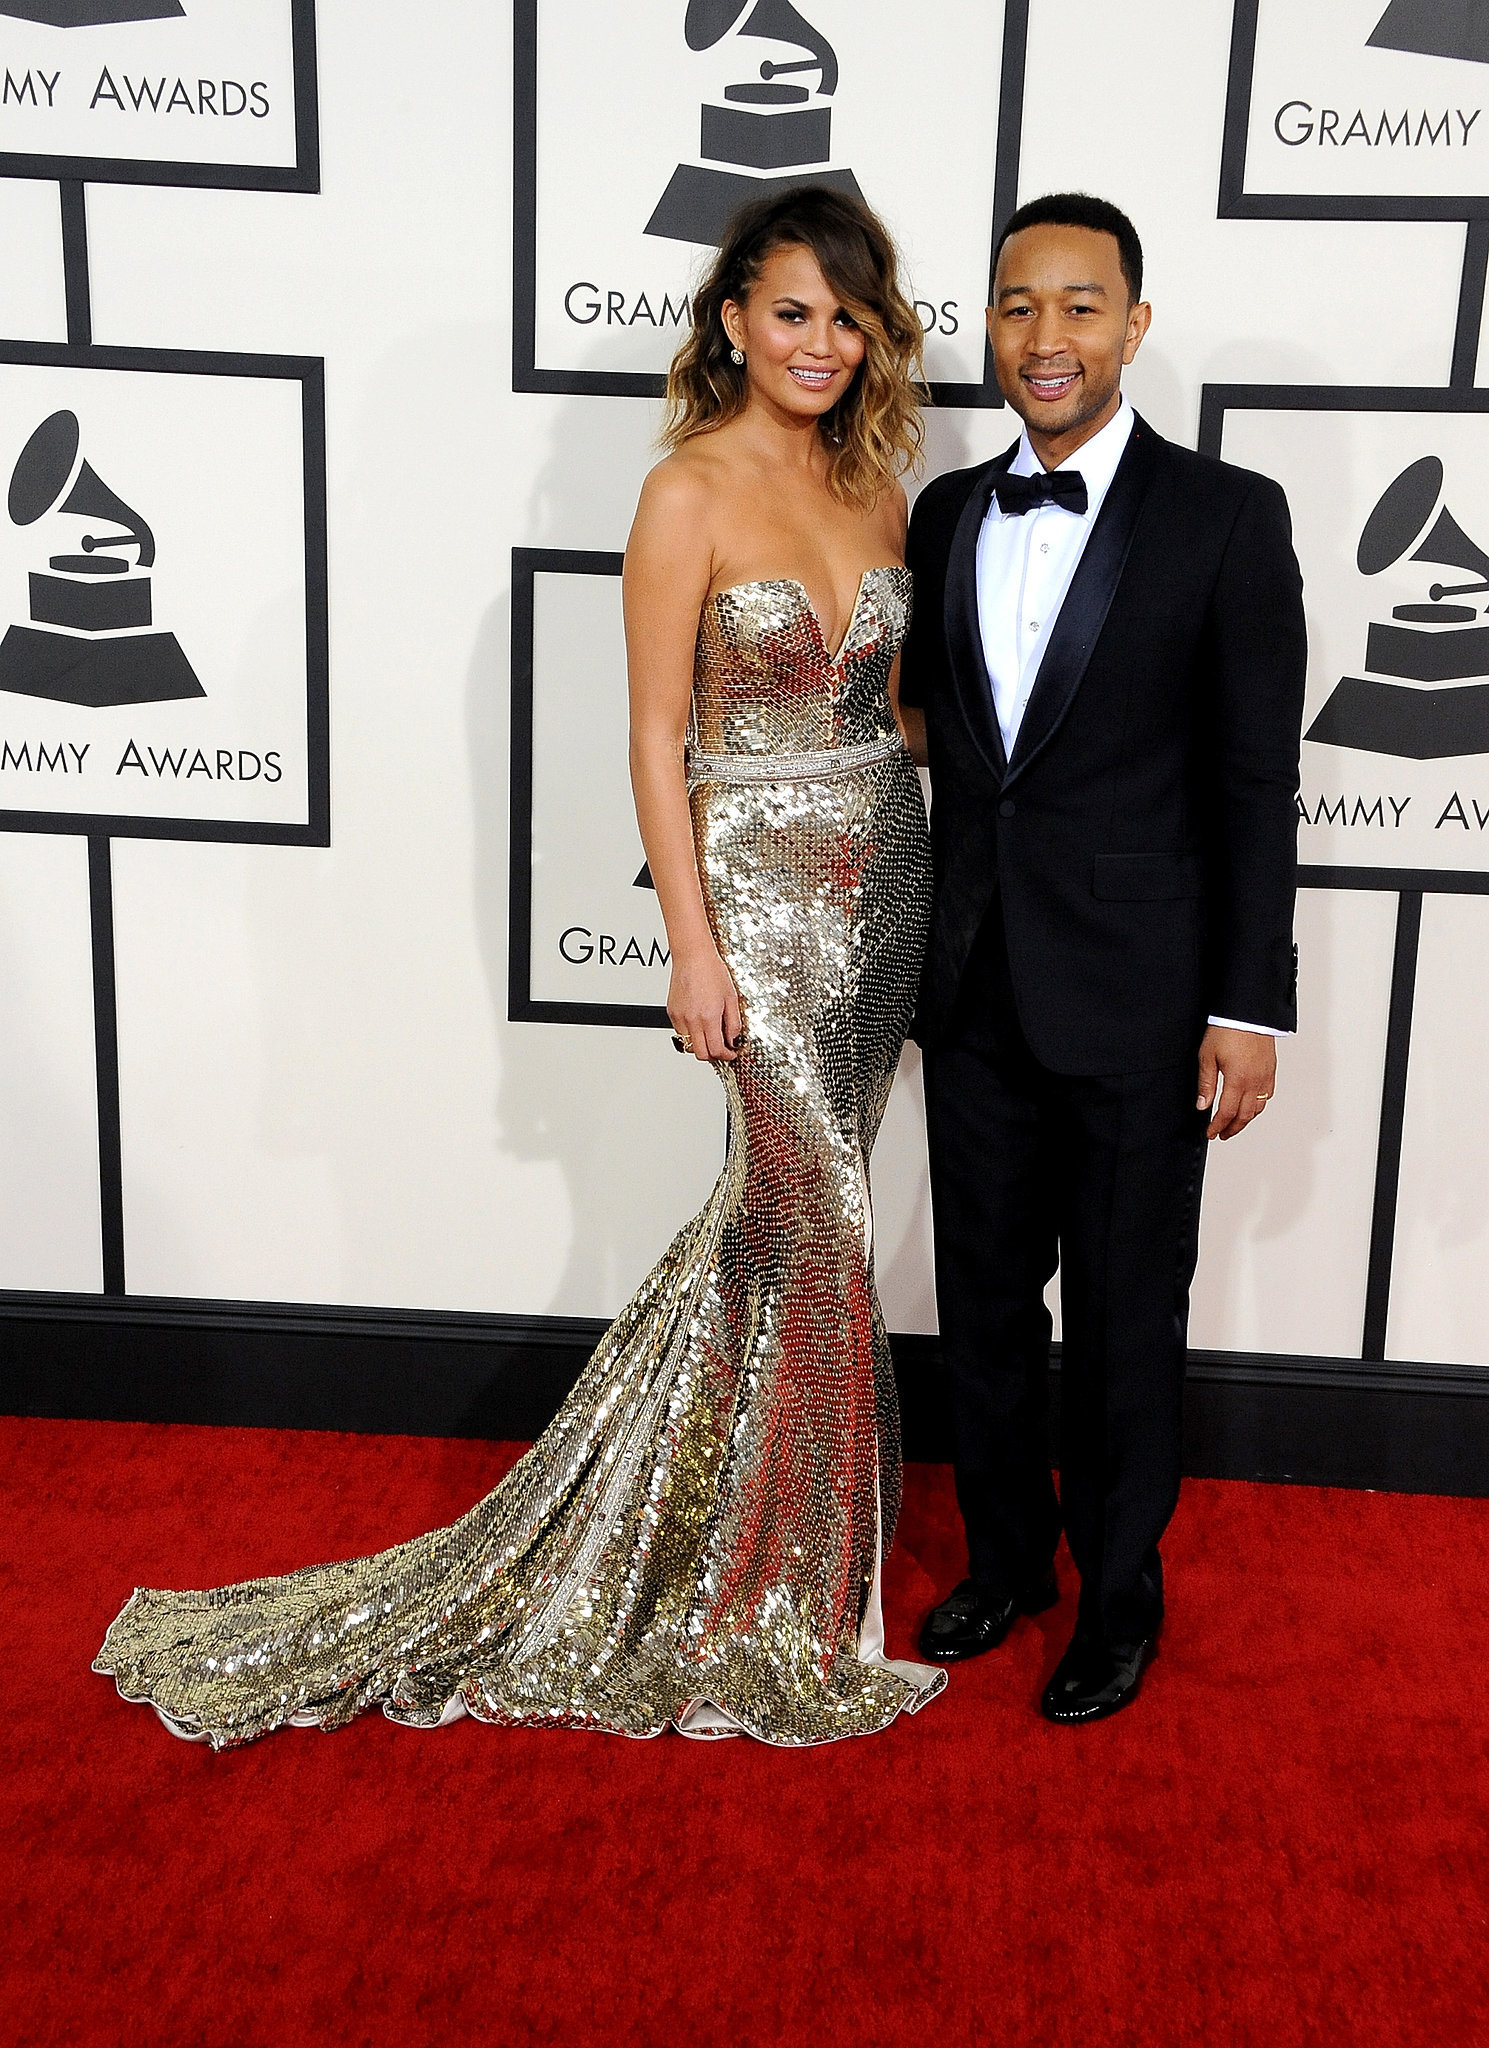 Chrissy Teigen and John Legend stunned at the Grammys.